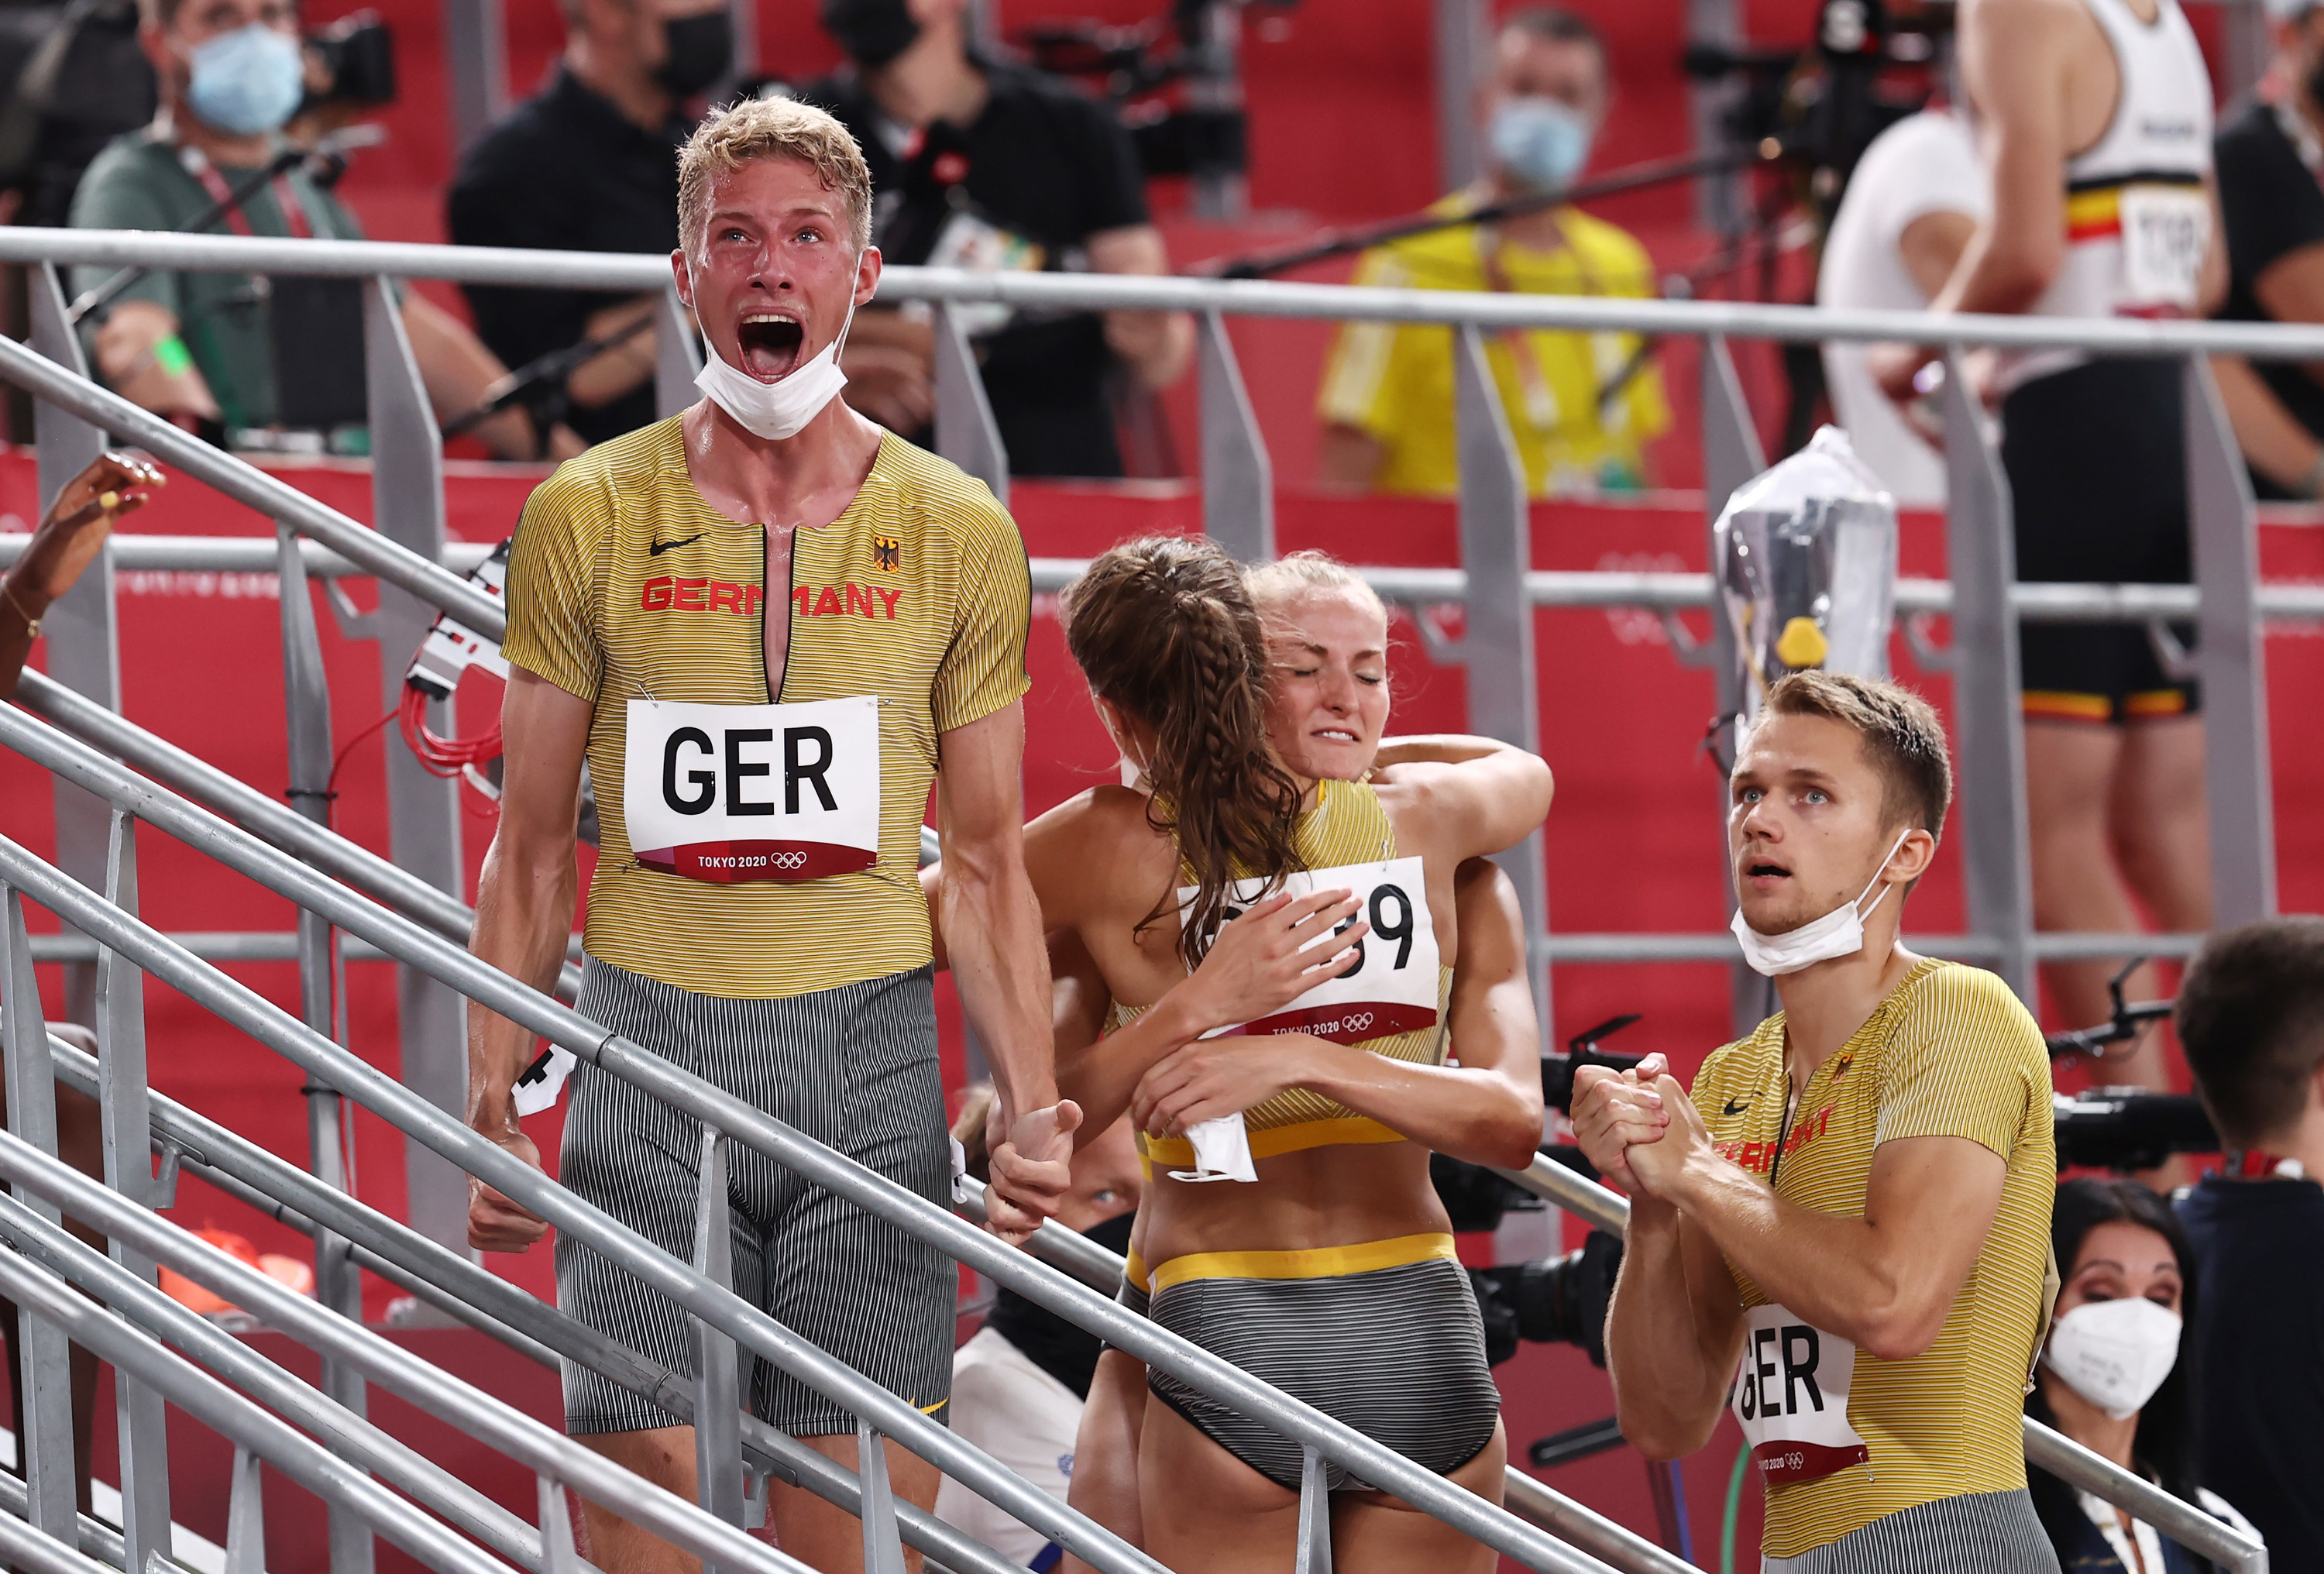 Four athletes standing on stairs scream in celebration, hug, and react with surprise to the results of their event